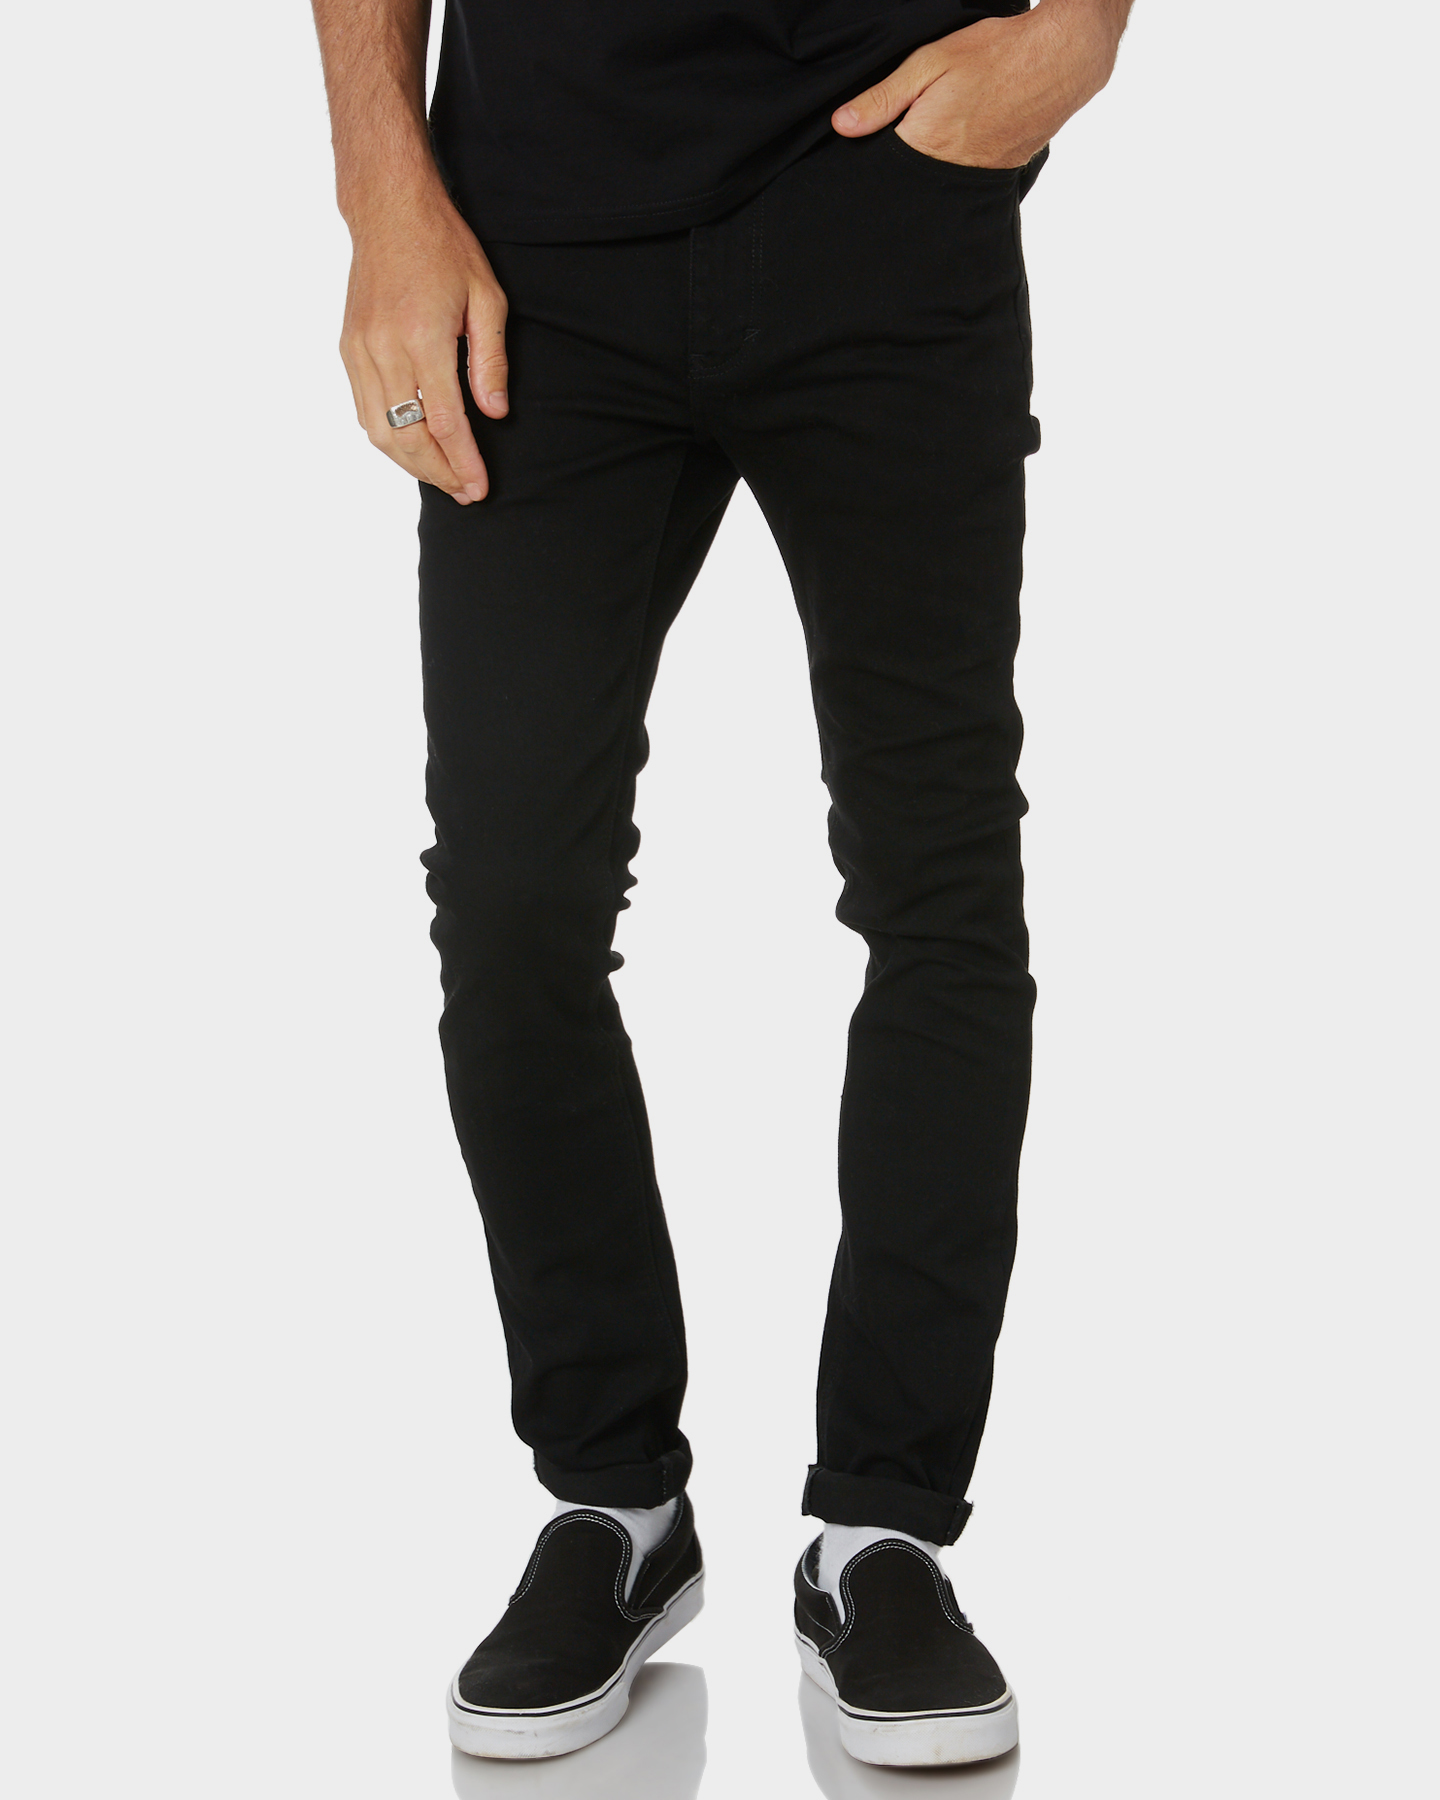 Image of A.Brand A Dropped Skinny Black Mirror